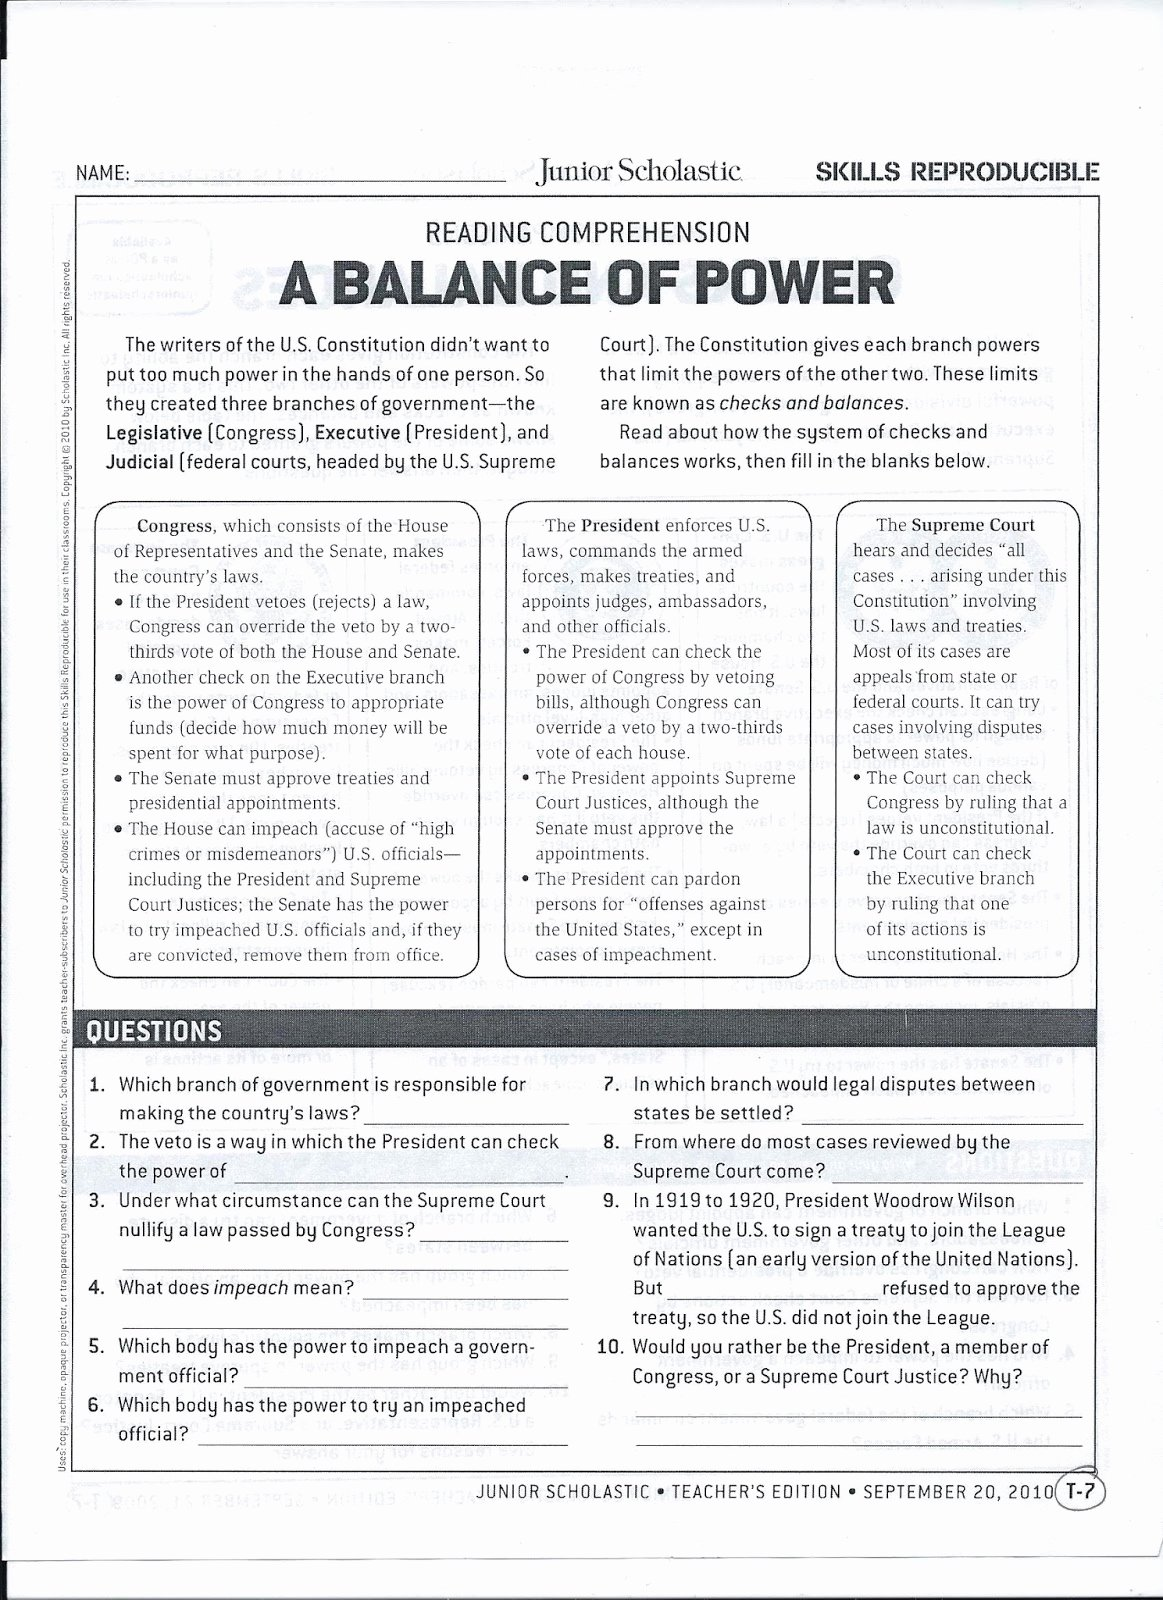 Checks and Balances Worksheet Answers New Gms 6th Grade social Stu S Checks and Balances